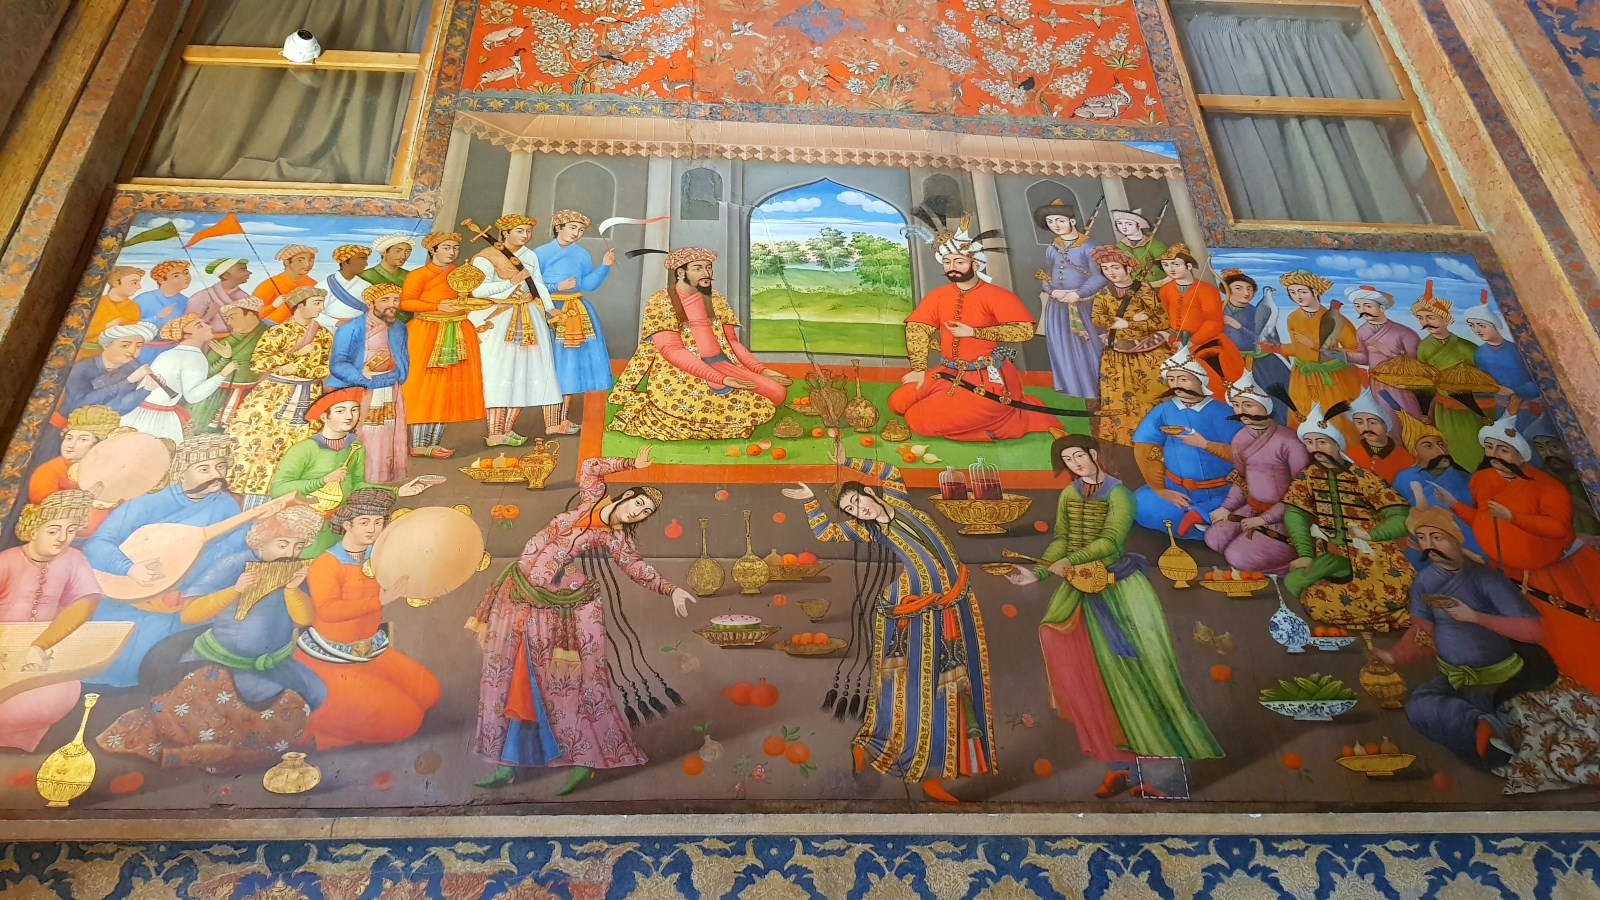 chehesotoon-painting-isfahan